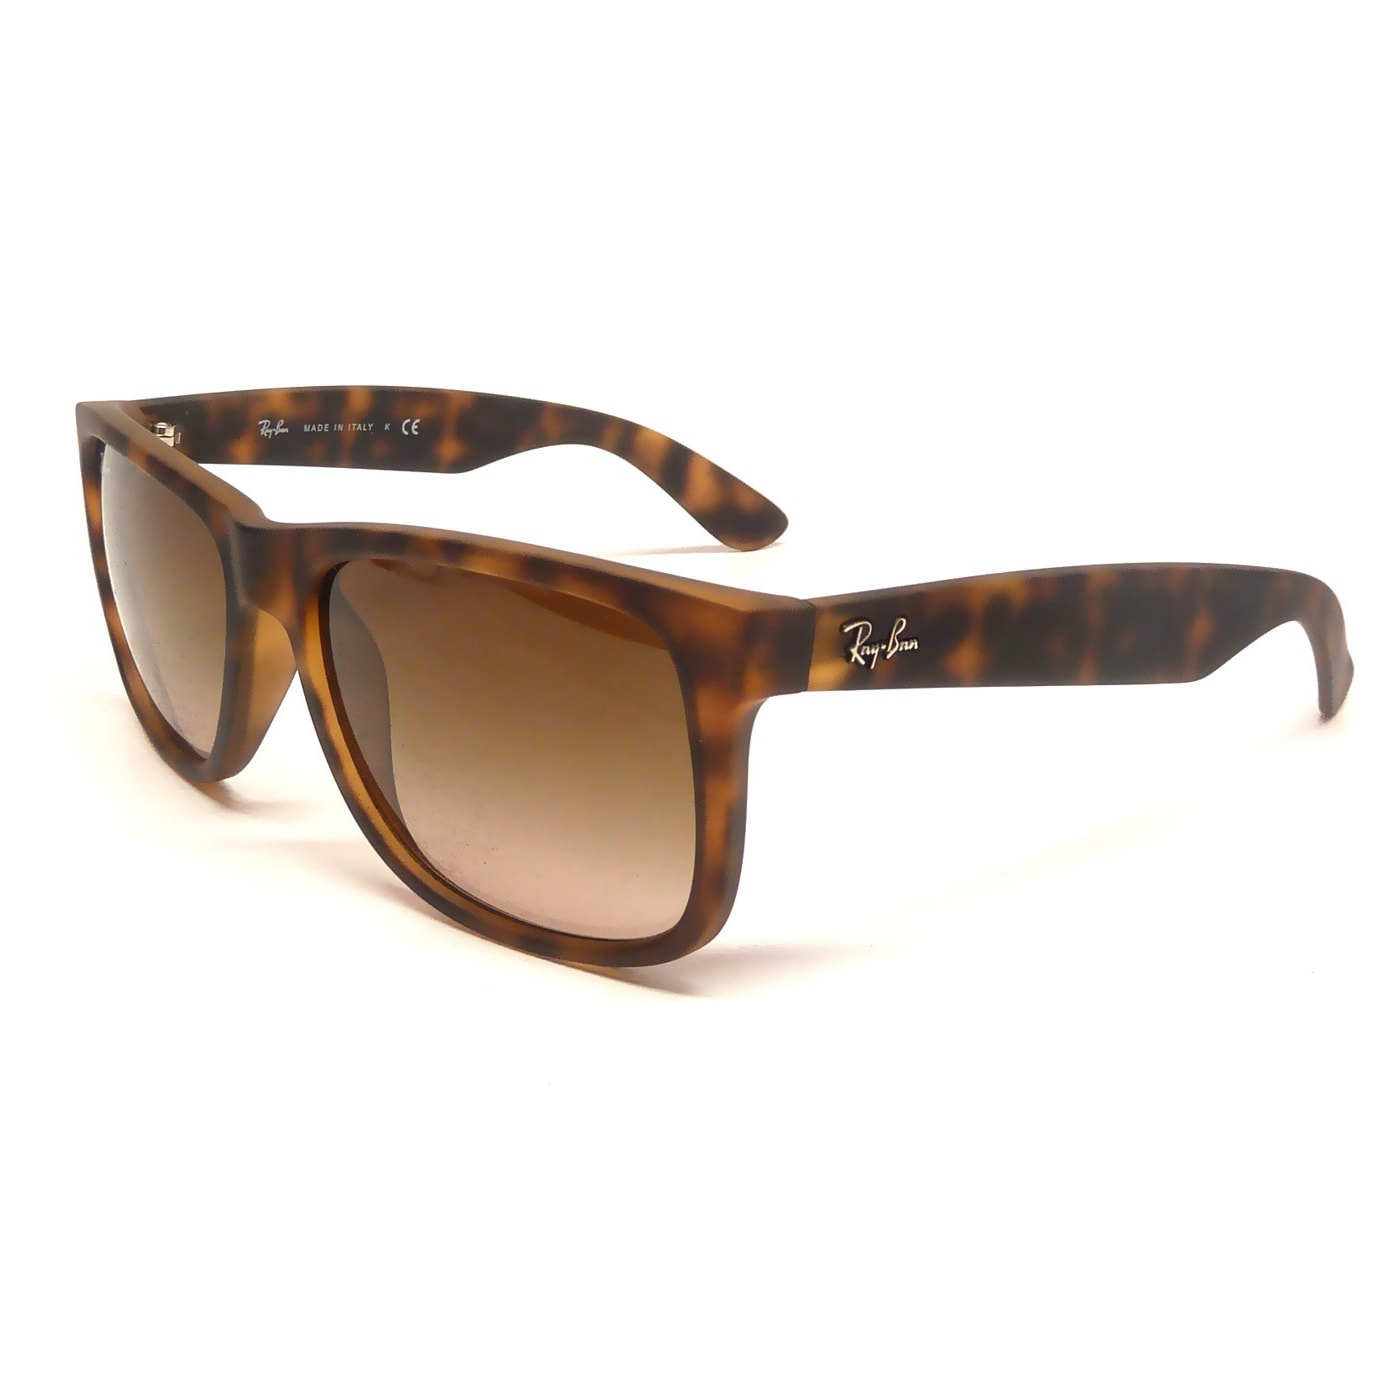 31c36bd3f7697 Shop Ray-Ban Justin Matte Tortoise Frame Brown Gradient 55mm Wayfarer  Sunglasses - Free Shipping Today - Overstock.com - 9221980